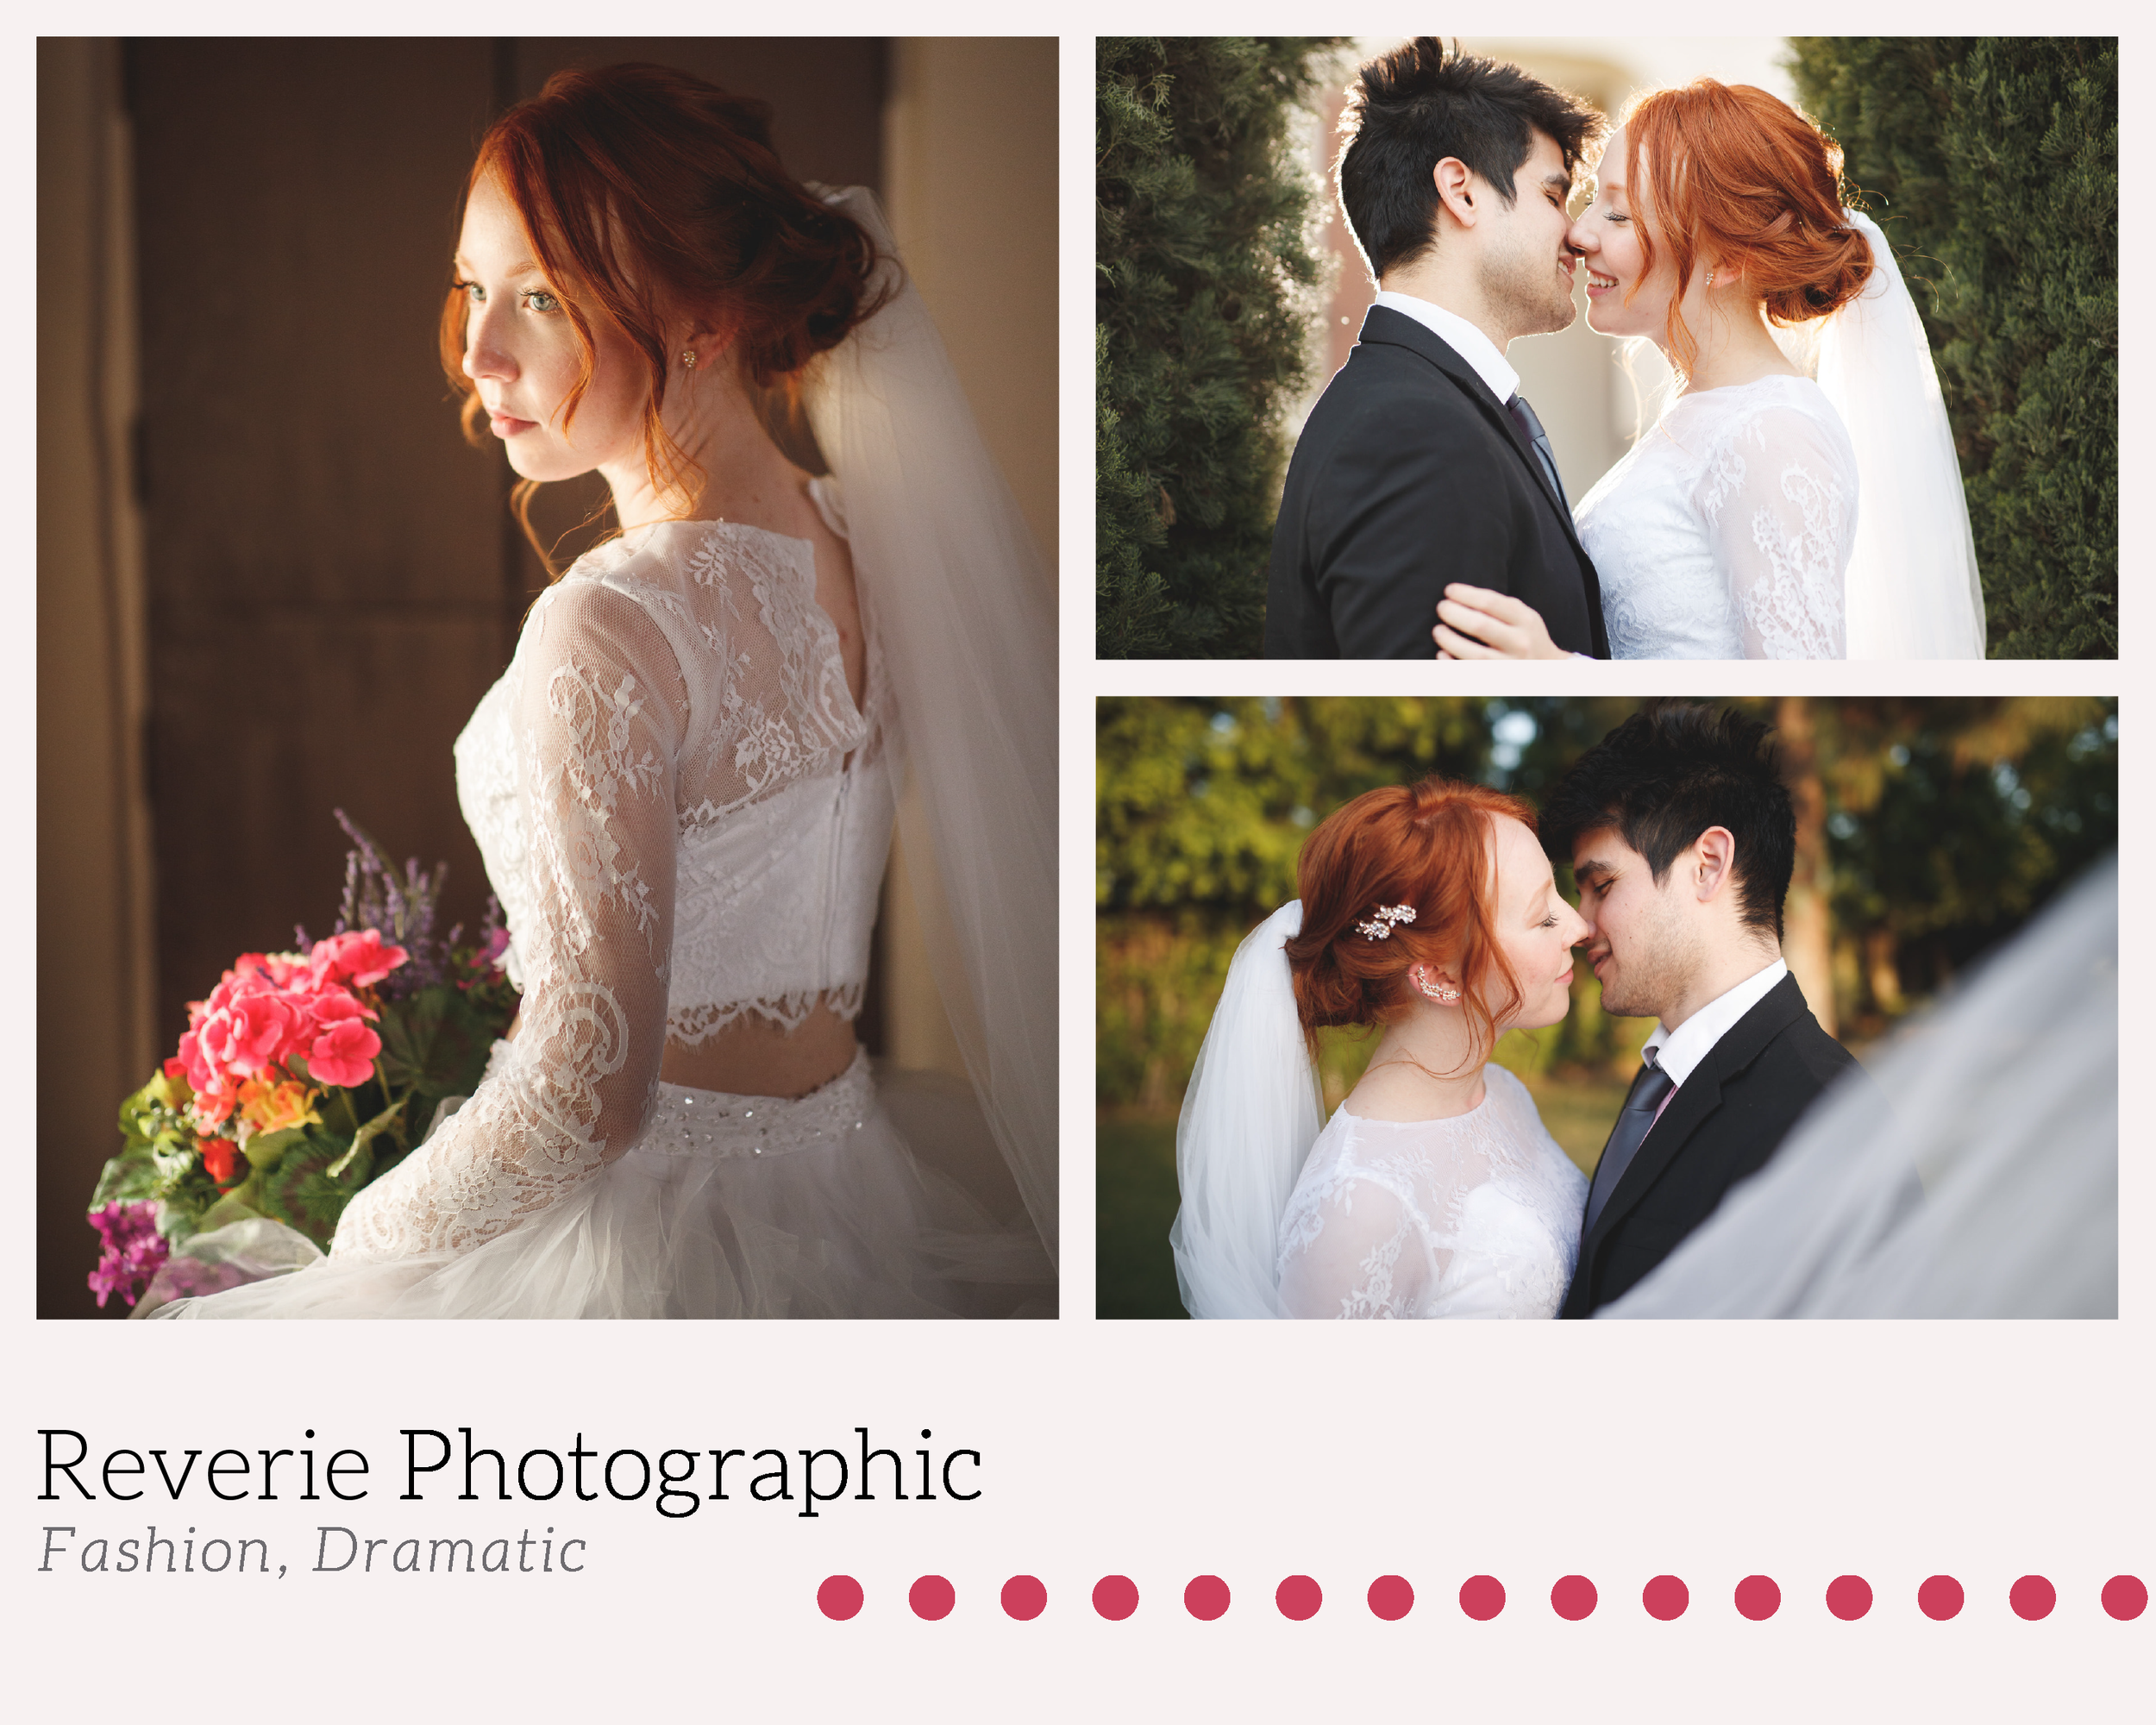 Reverie Photographic - Fashion Wedding Photography Style.png